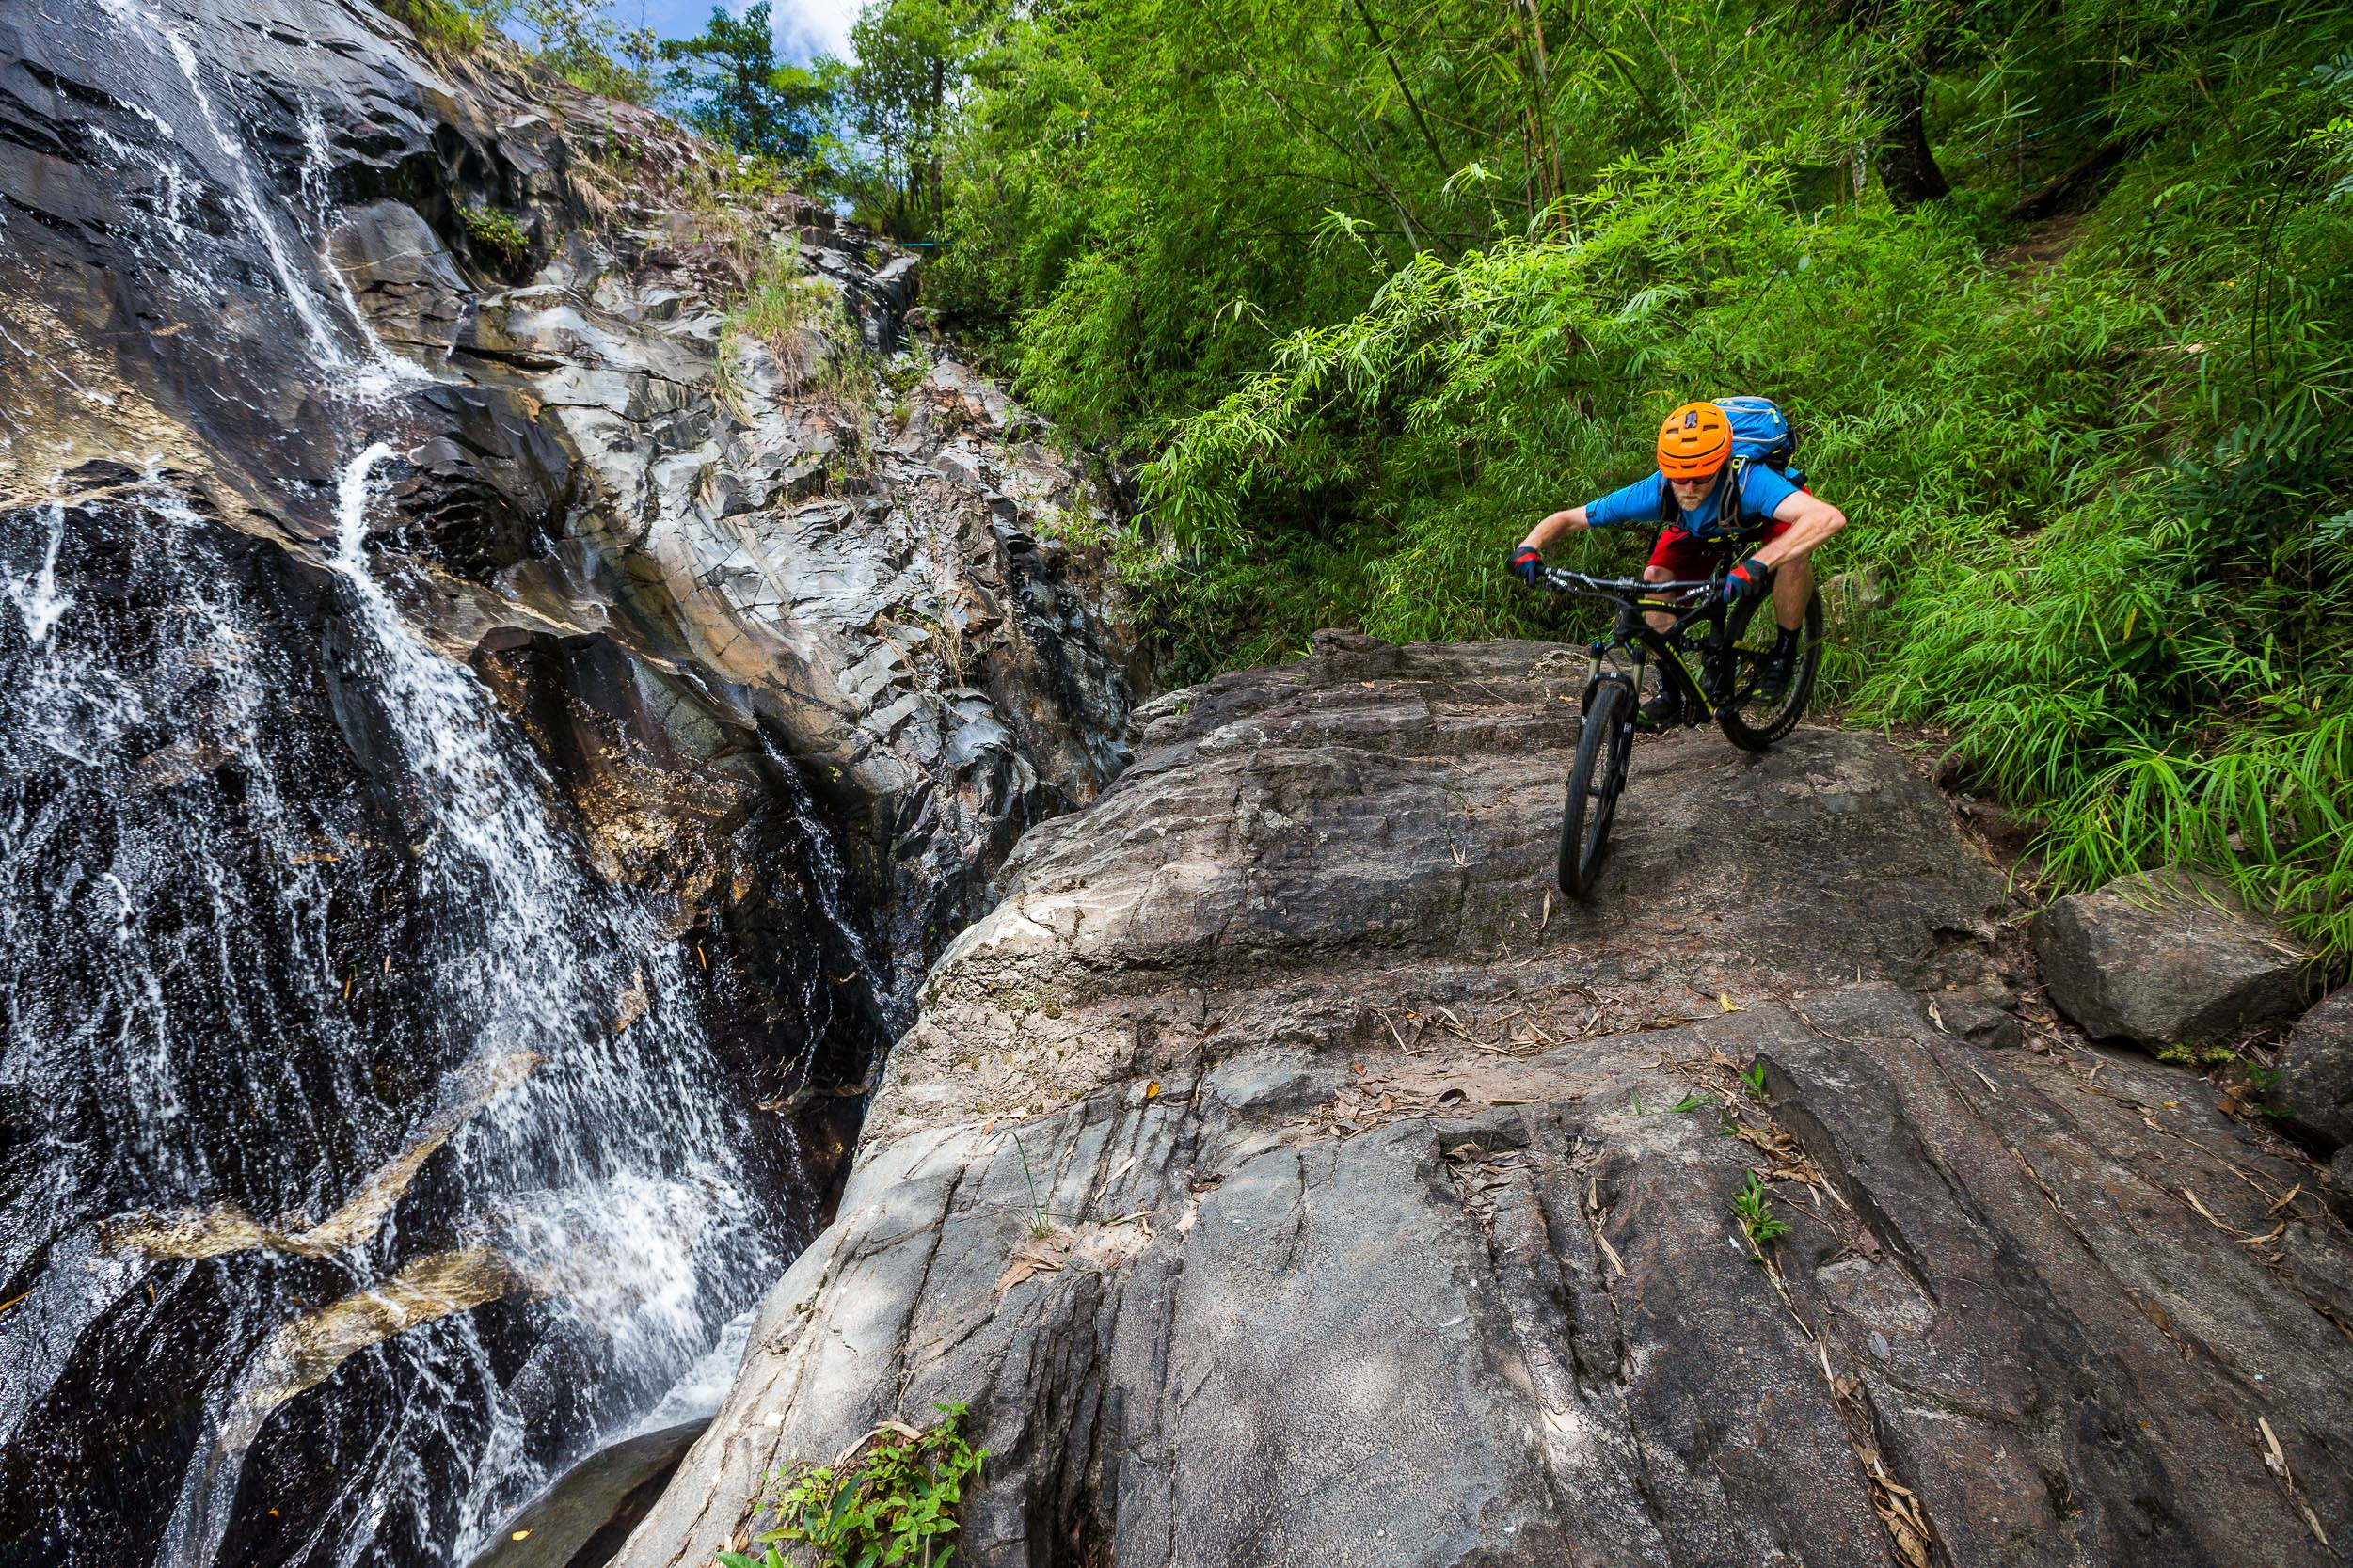 Andrew Whiteford rides the Mae Wang single track trail in the jungle near Chiang Mai, Thailand